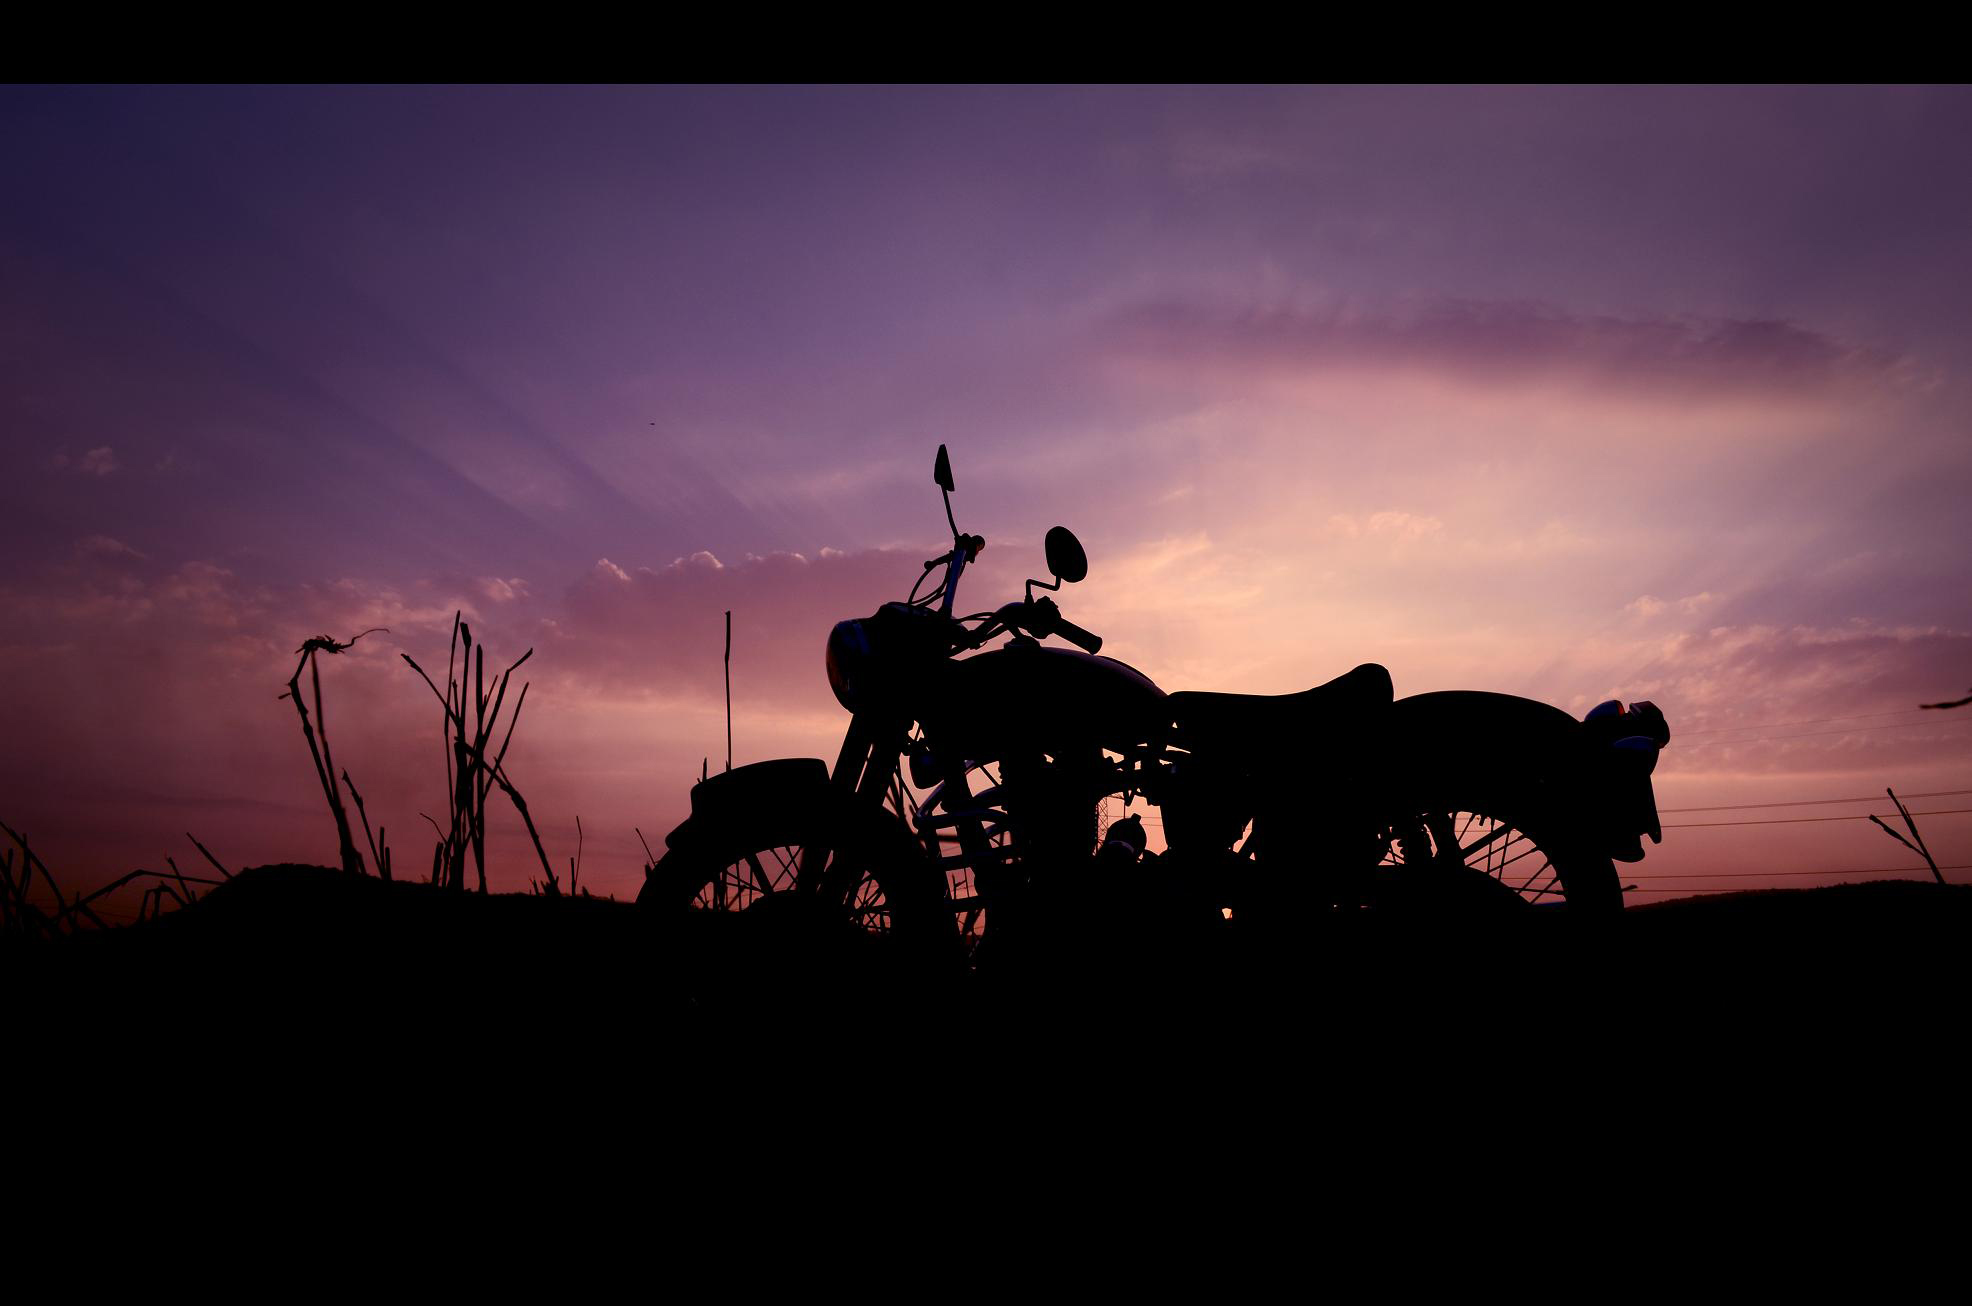 HD And 4K Wallpaper Collections